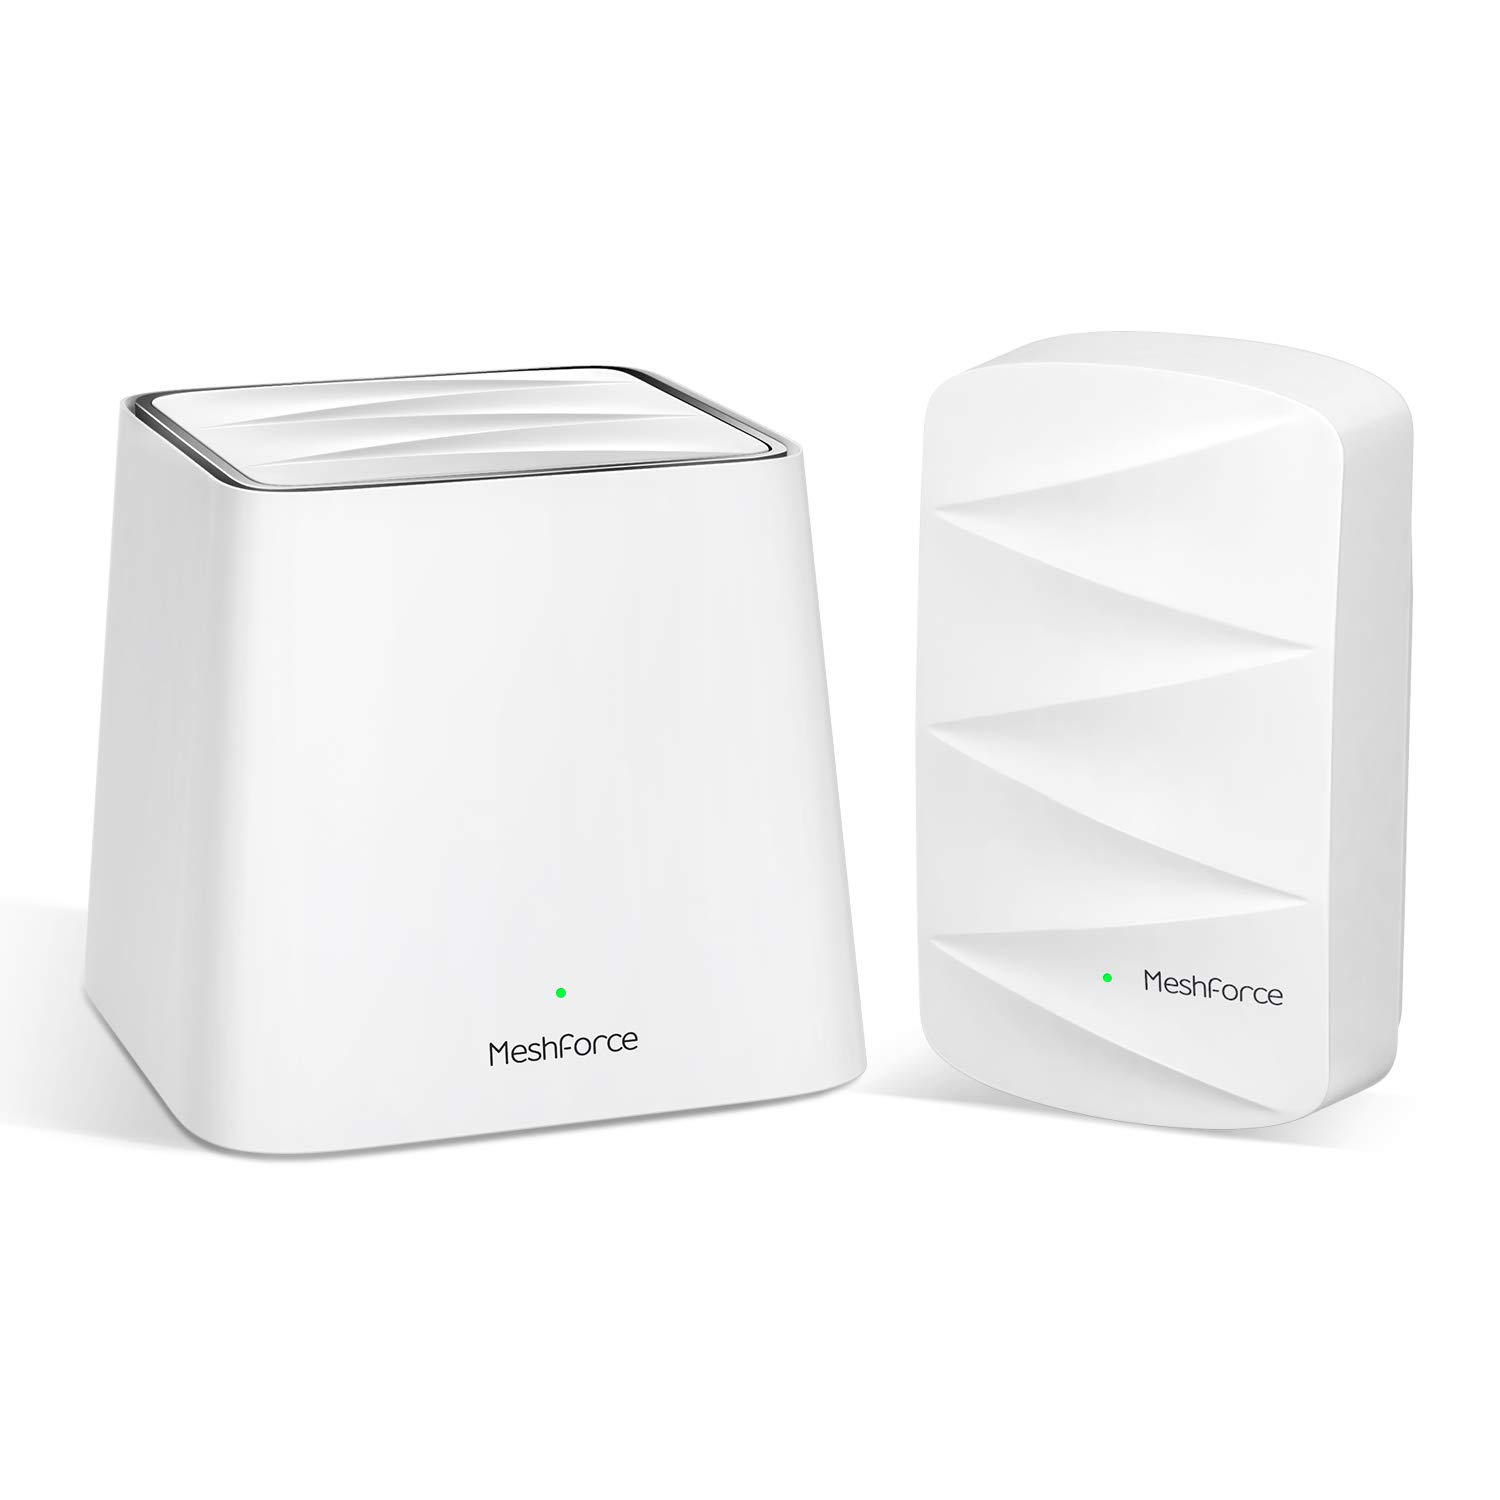 MeshForce Whole Home Mesh WiFi System M3 Suite (1 WiFi Point + 1 WiFi Dot) - Dual Band WiFi System Router Replacement and Wall Plug Extenders-High Performance Wireless Coverage for 4+ Bedrooms Home by Meshforce